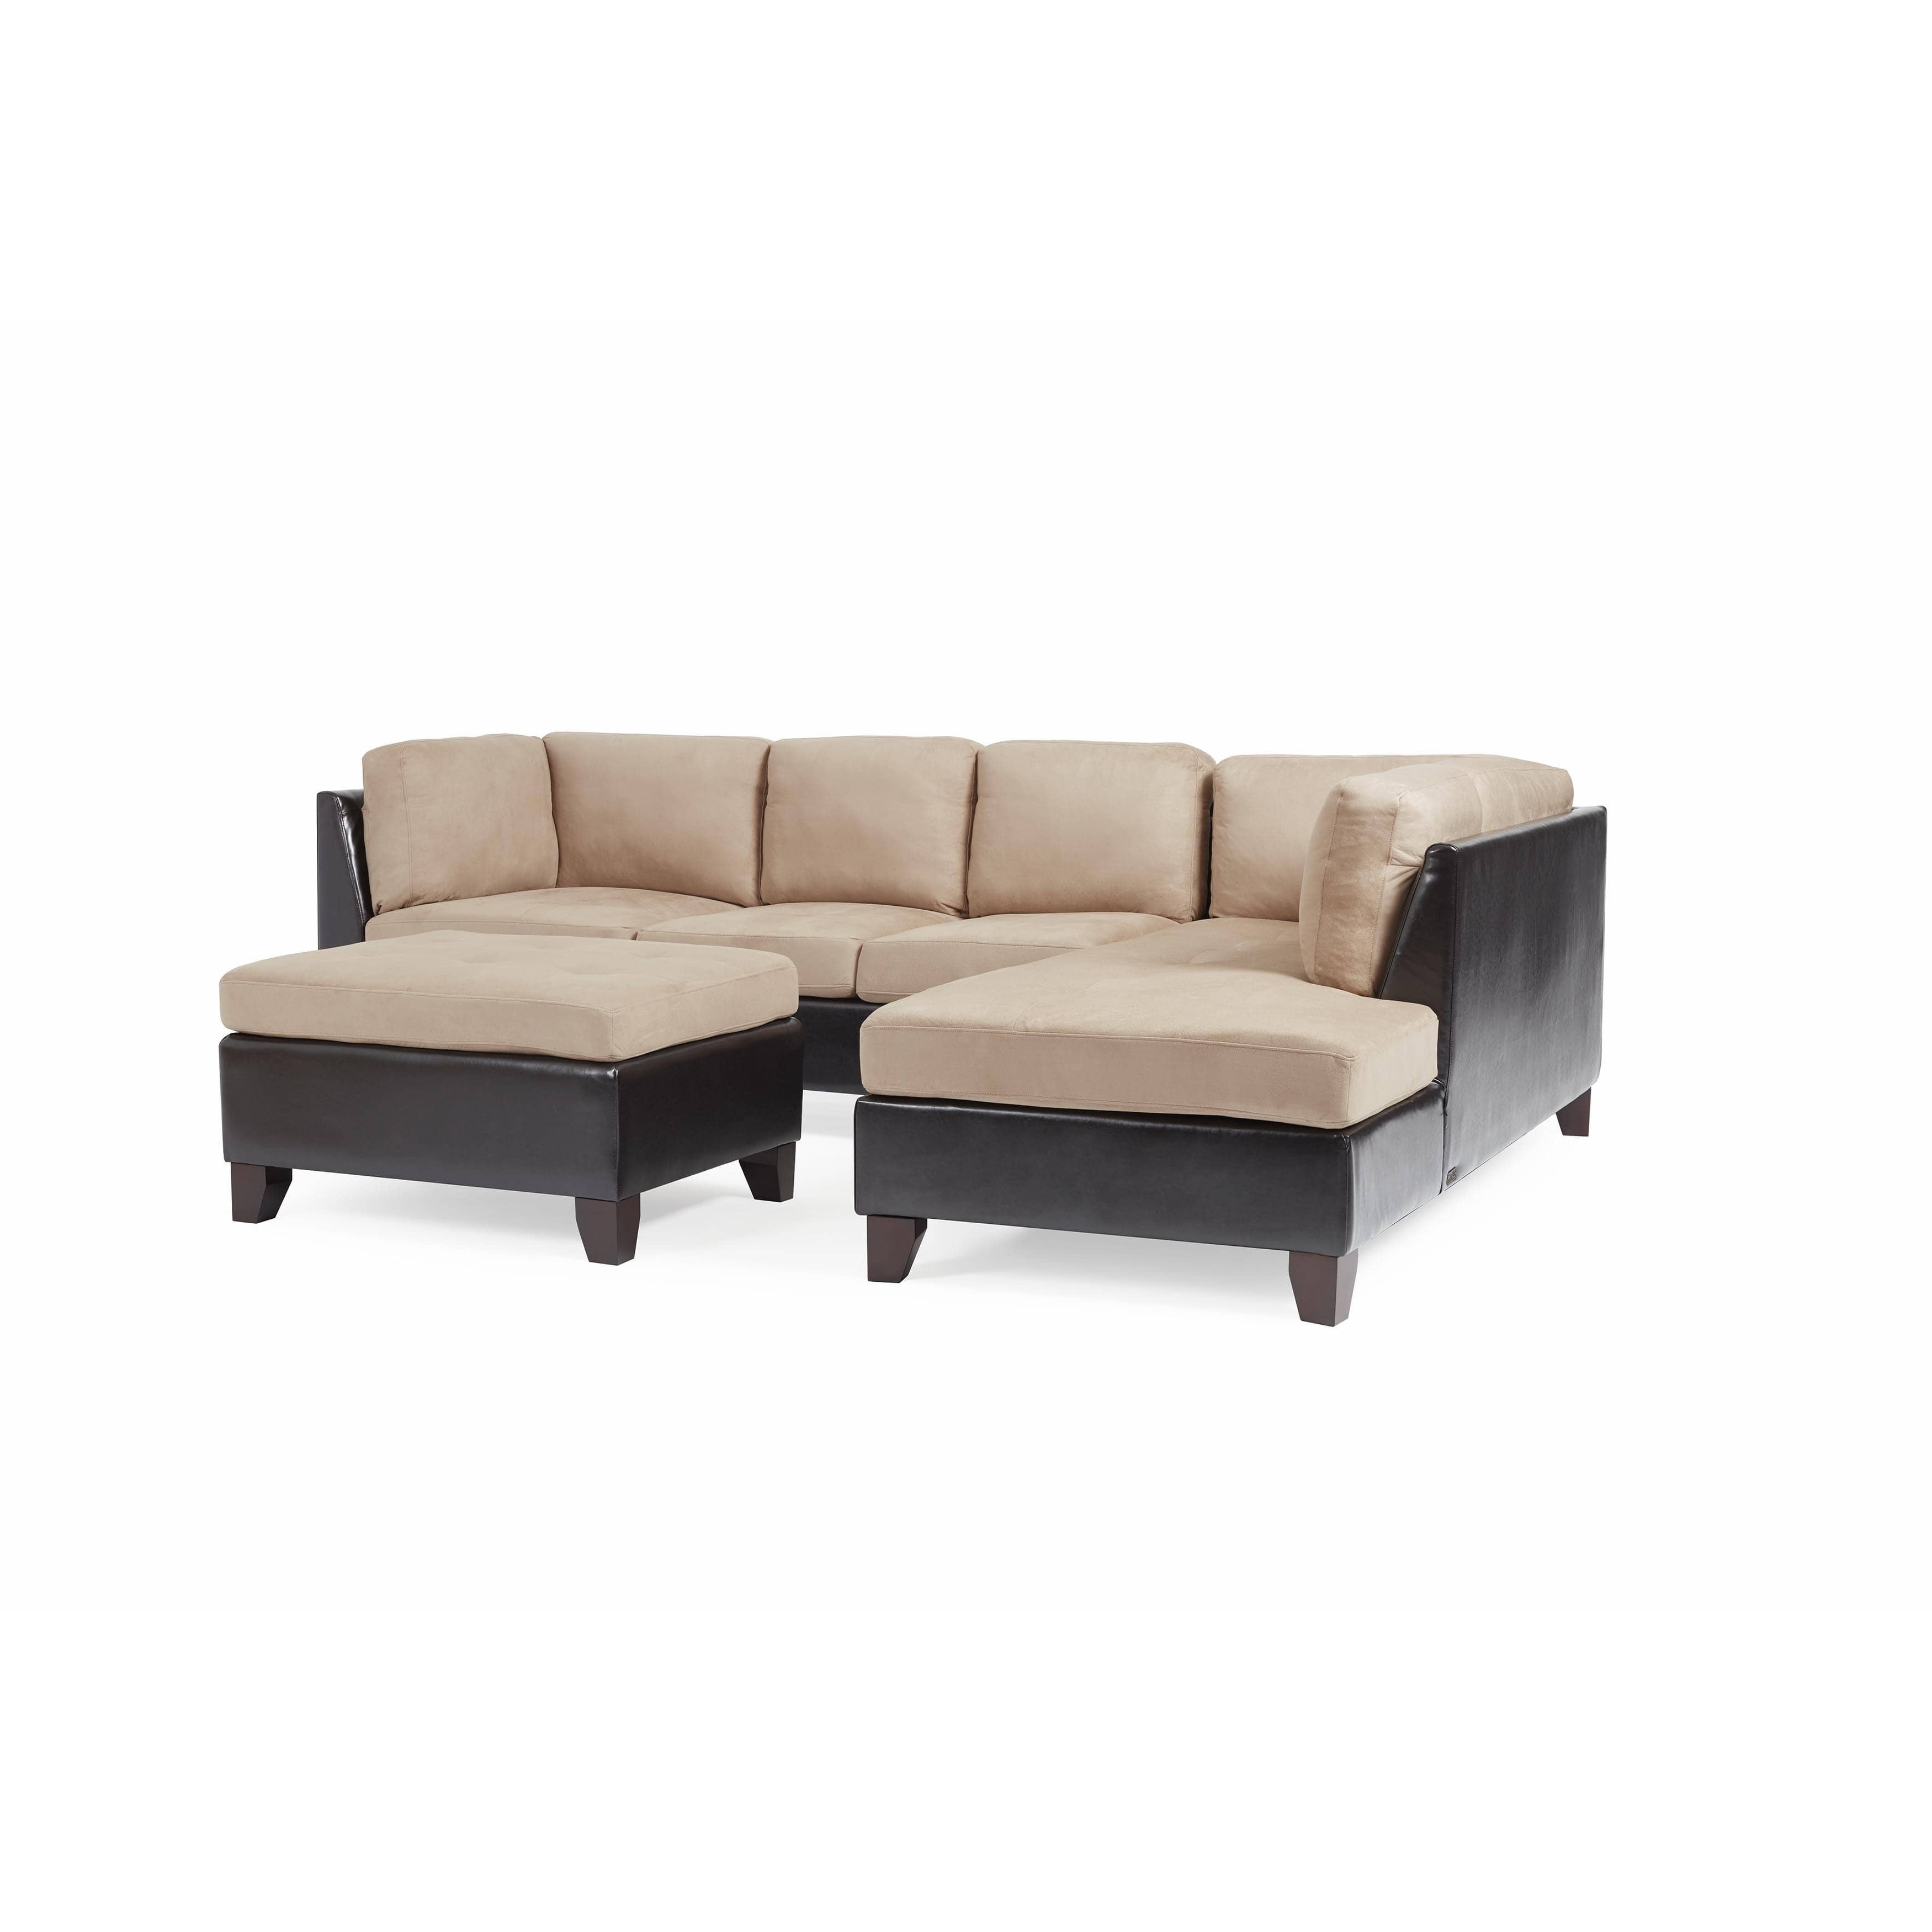 Charlotte Sectional Sofas With Regard To Favorite Abbyson Charlotte Beige Sectional Sofa And Ottoman – Free Shipping (View 8 of 20)